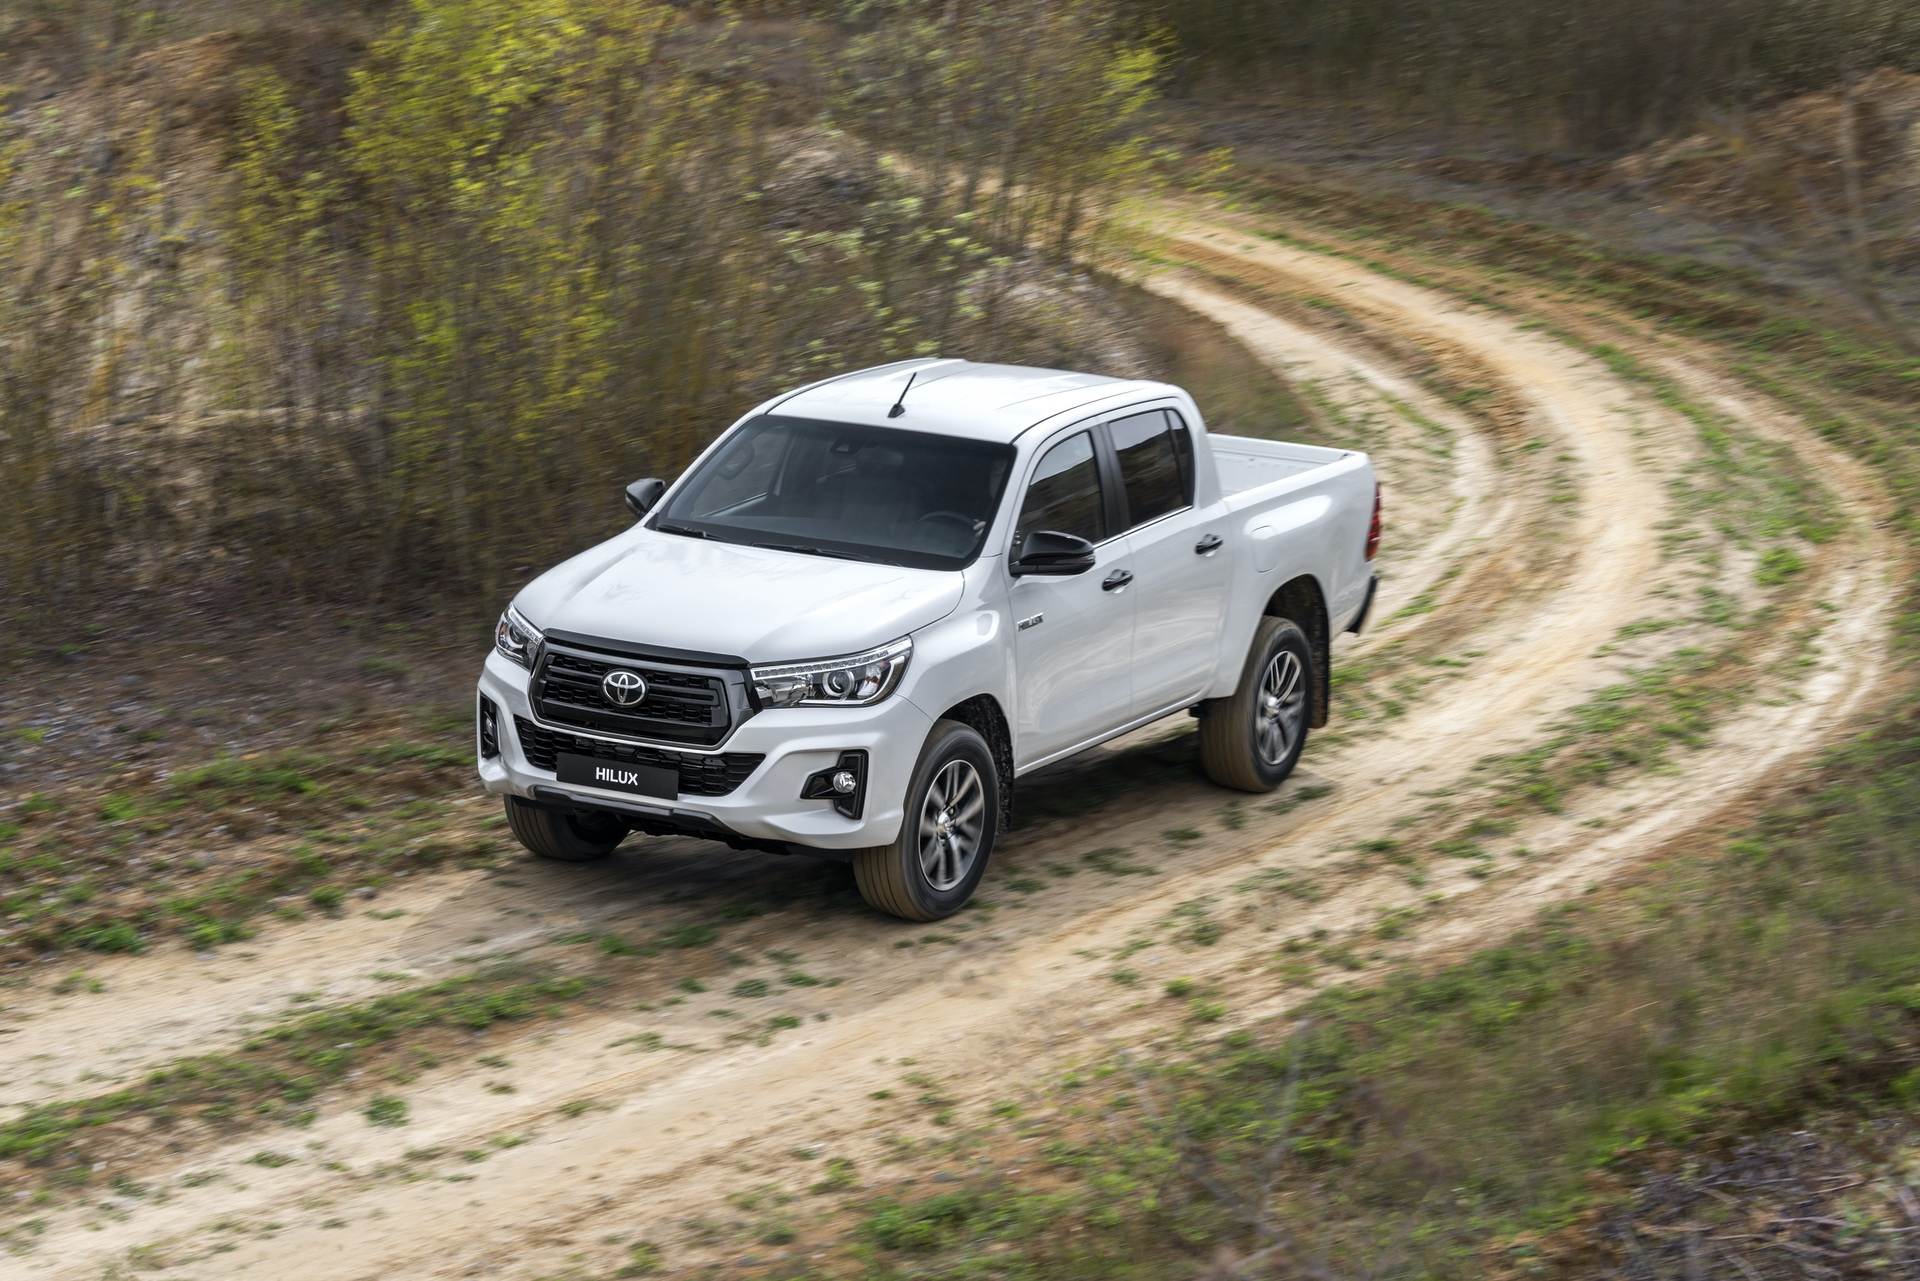 Toyota_Hilux_Special_Edition_0074